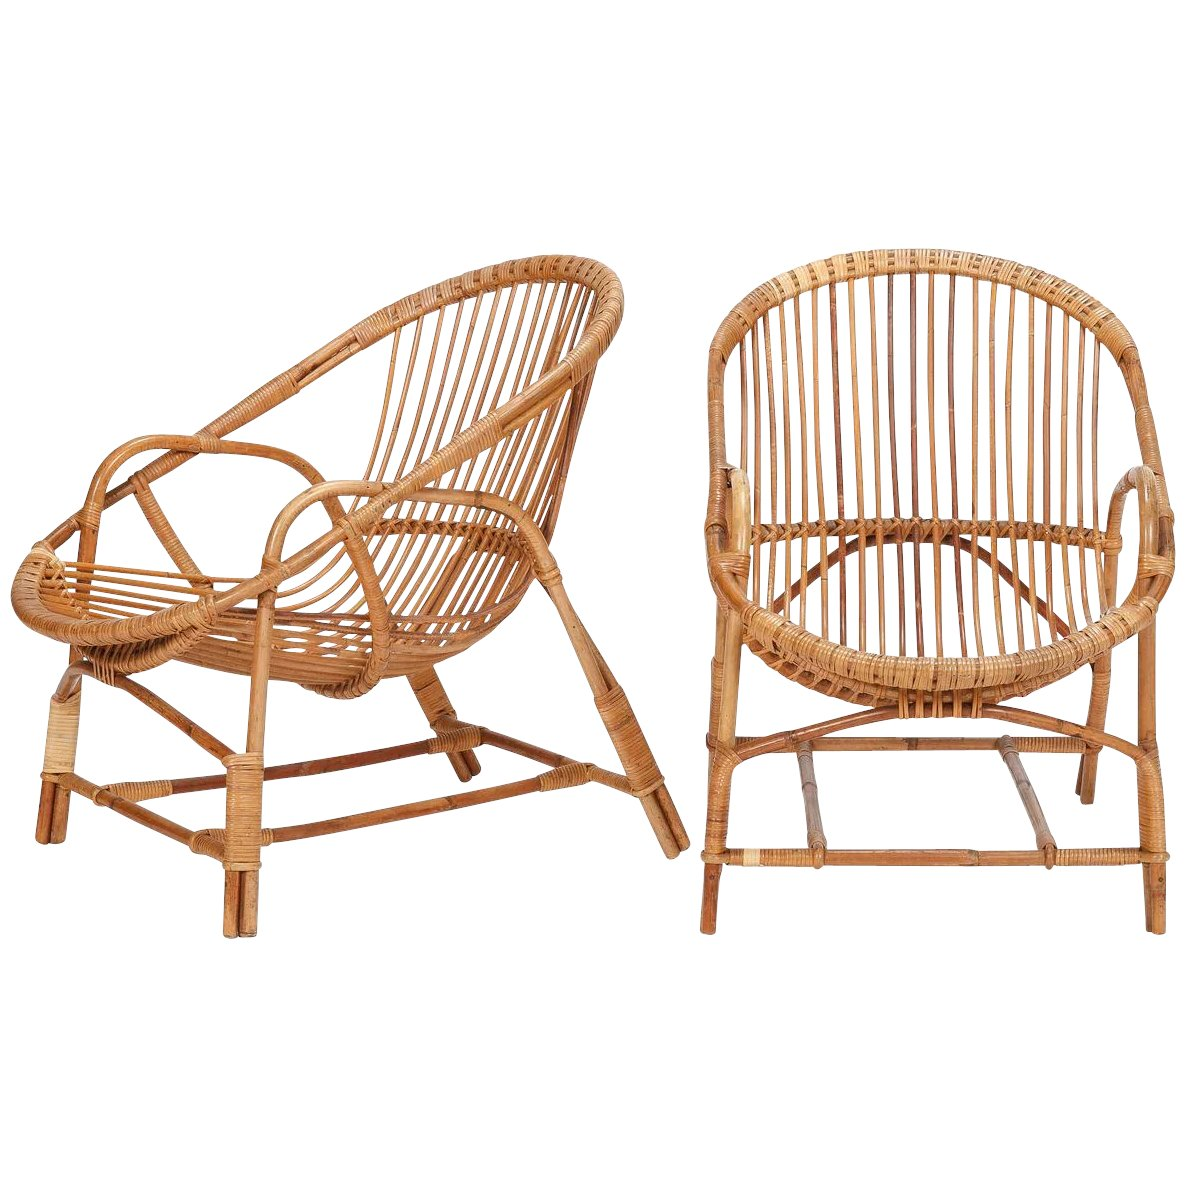 Pair Of French Bamboo Wicker Chairs 1950 S